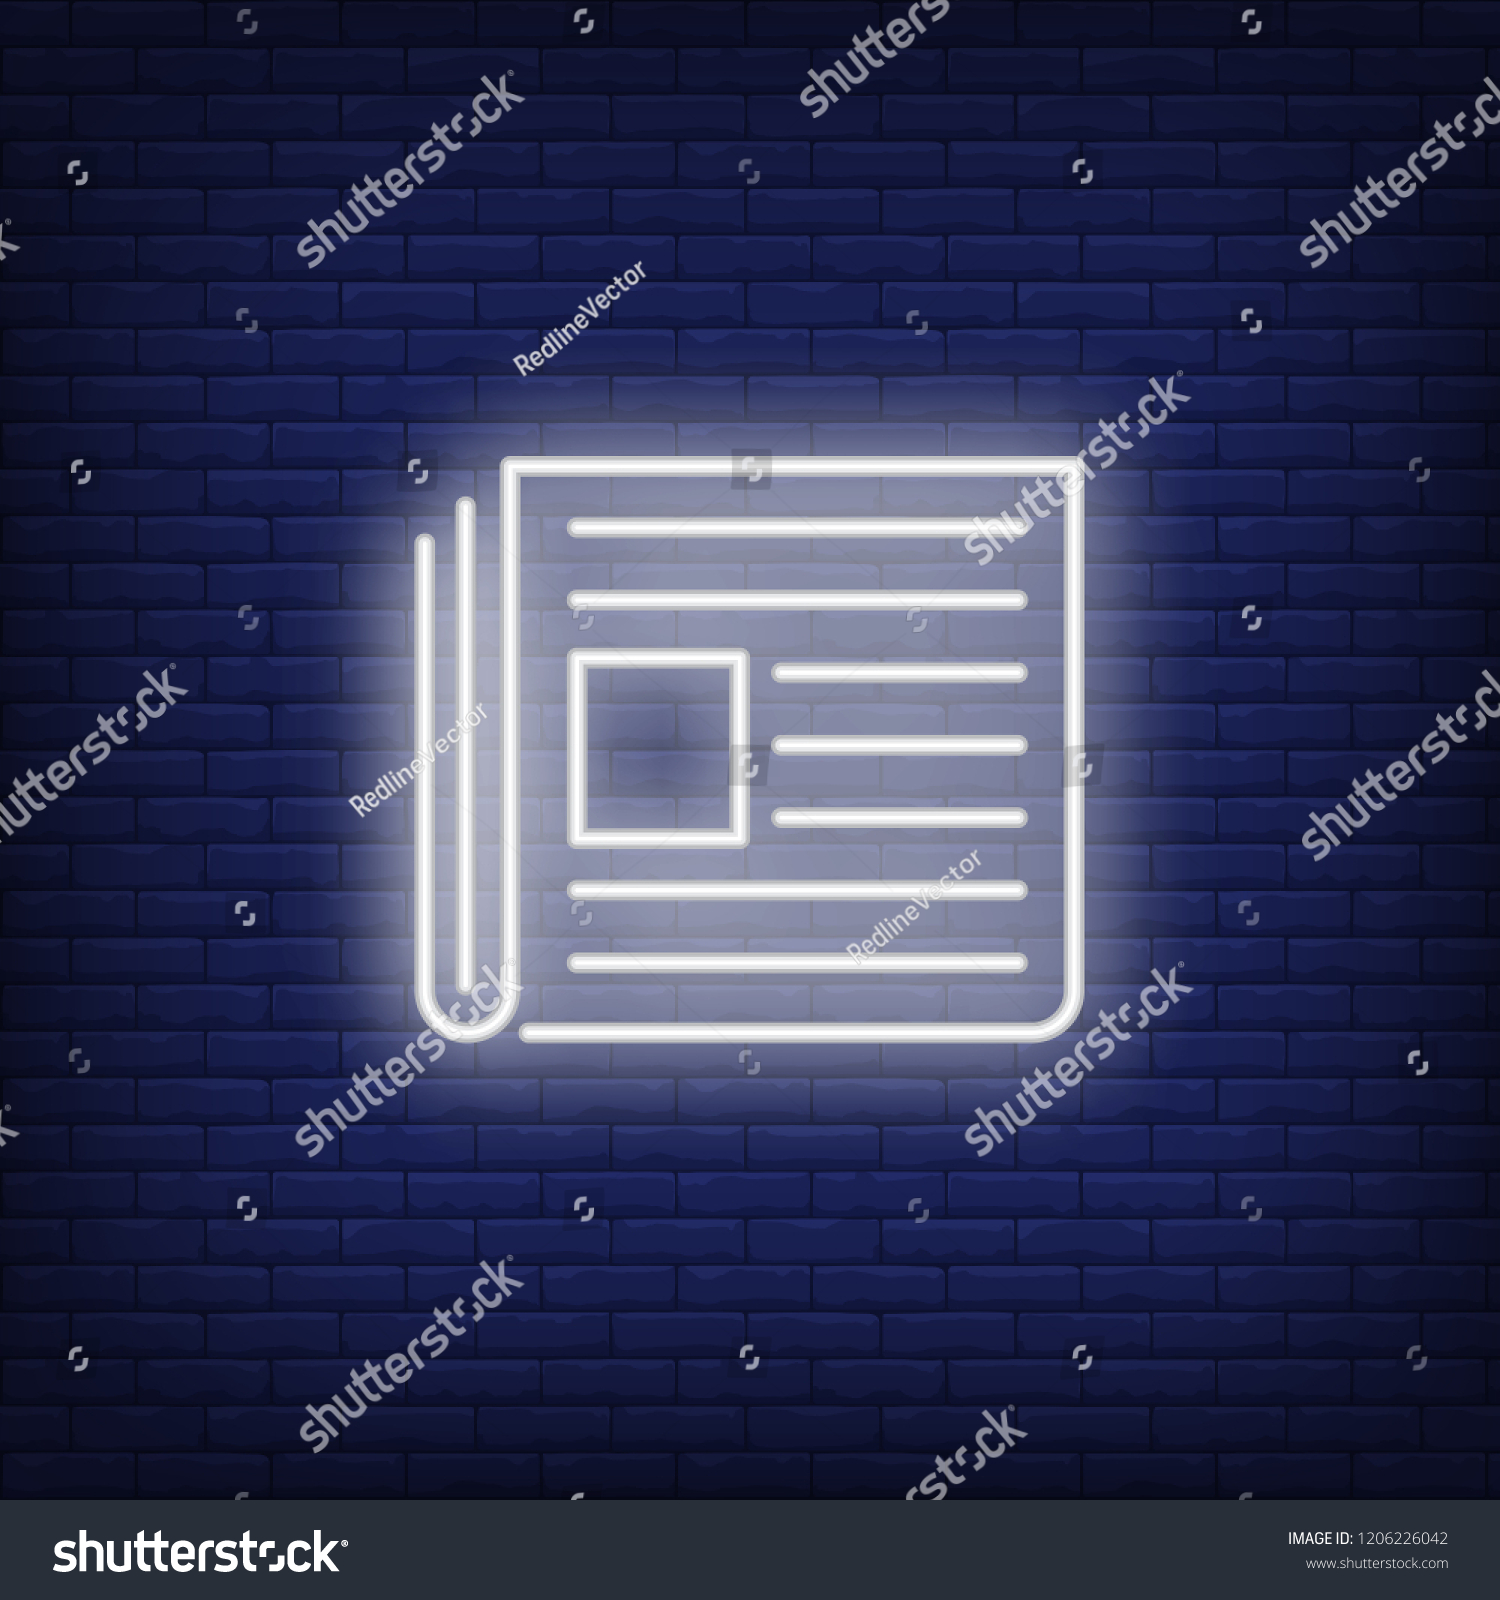 hight resolution of newspaper neon sign glowing neon paper on dark blue brick background vector illustration for news printing topics online magazines and paper editions